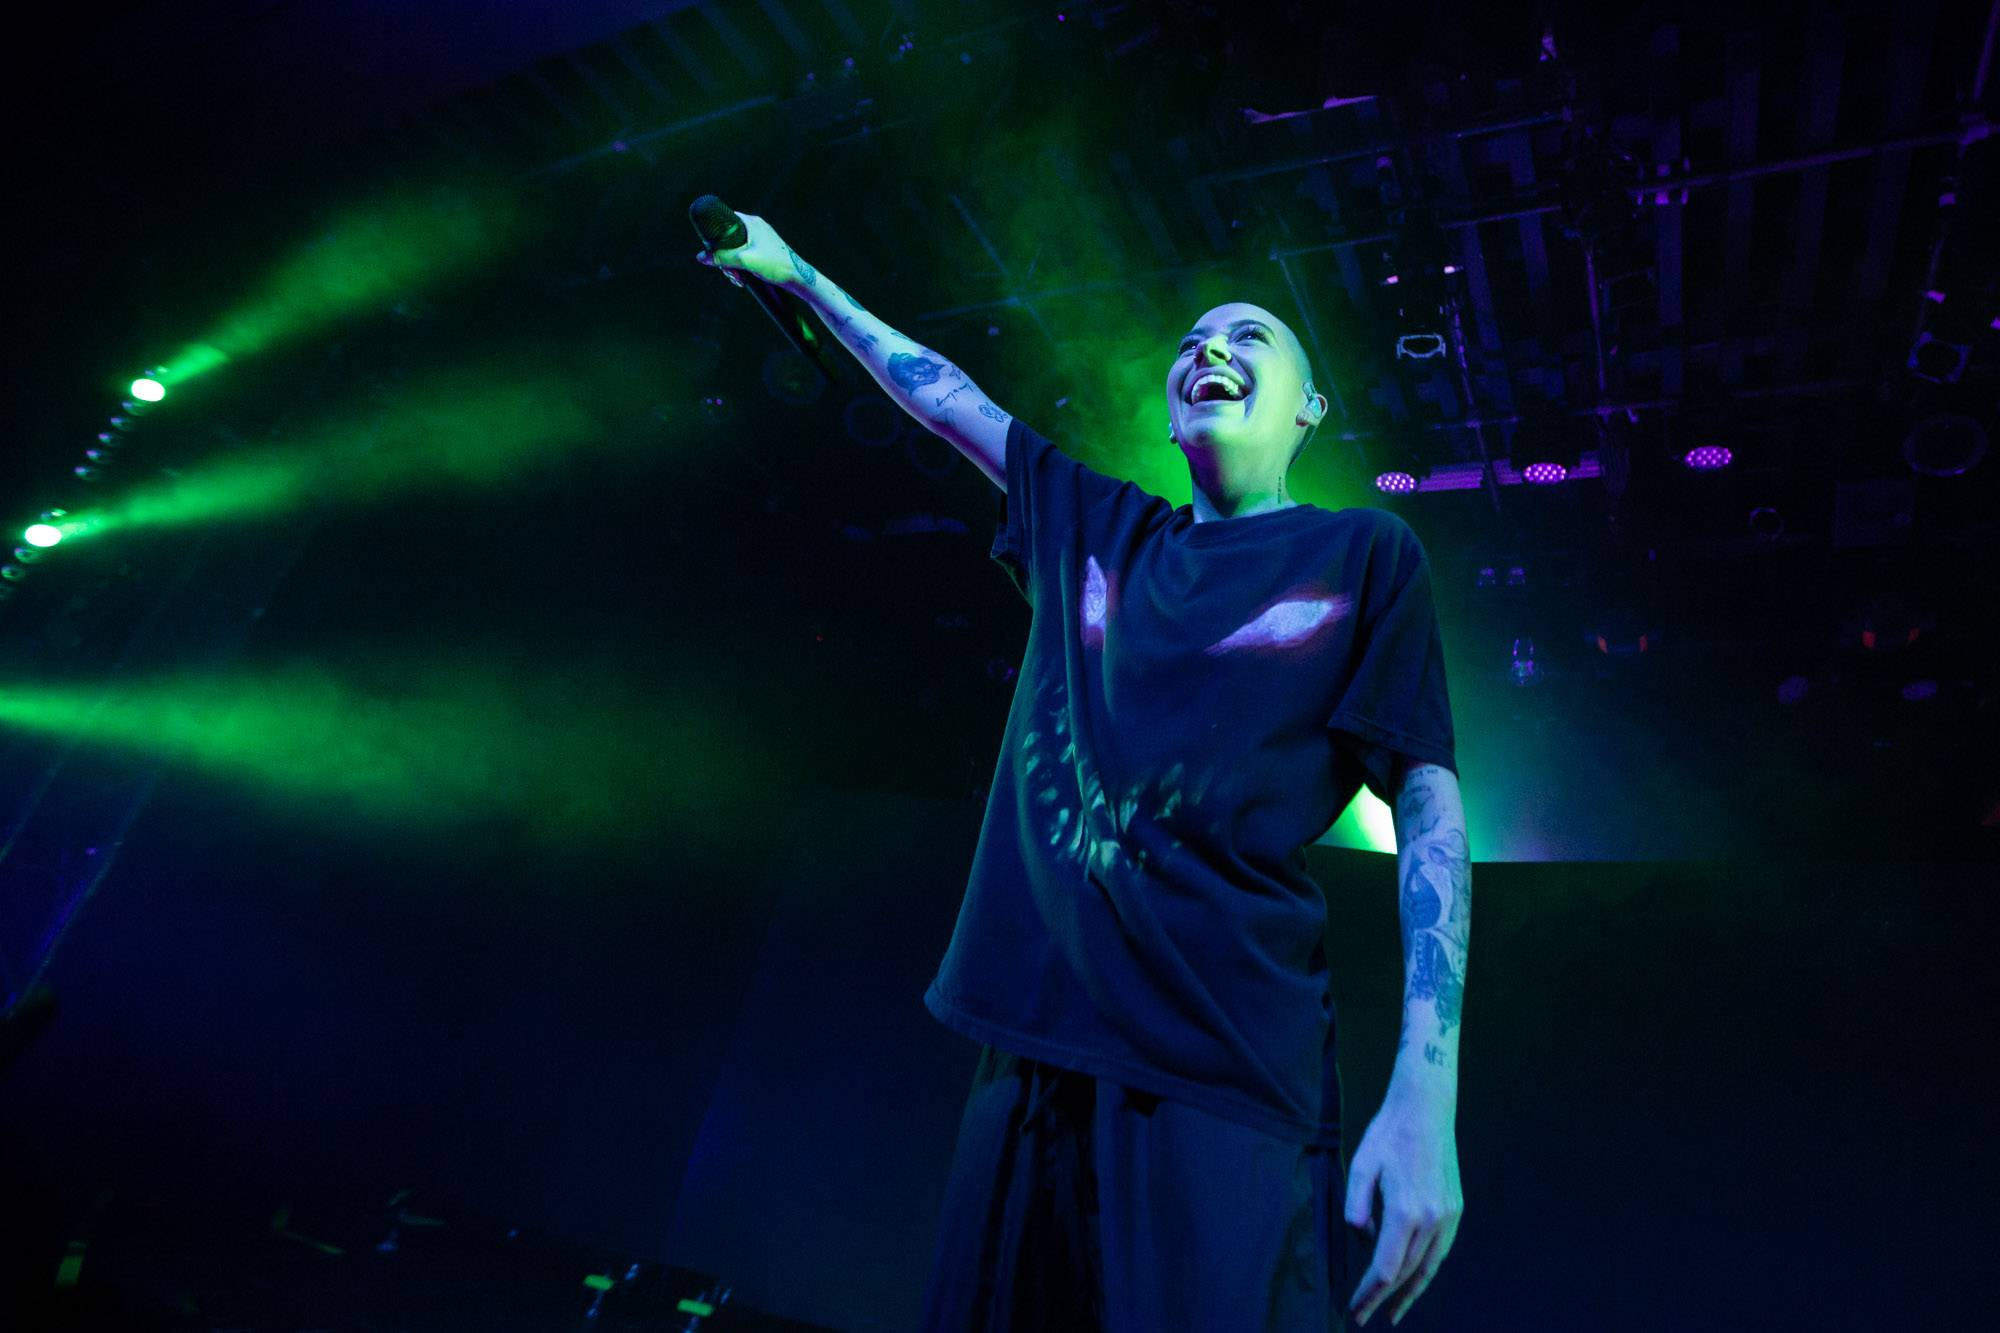 Bishop Briggs at the Commodore Ballroom, Vancouver, Nov 4 2019. Kirk Chantraine photo.